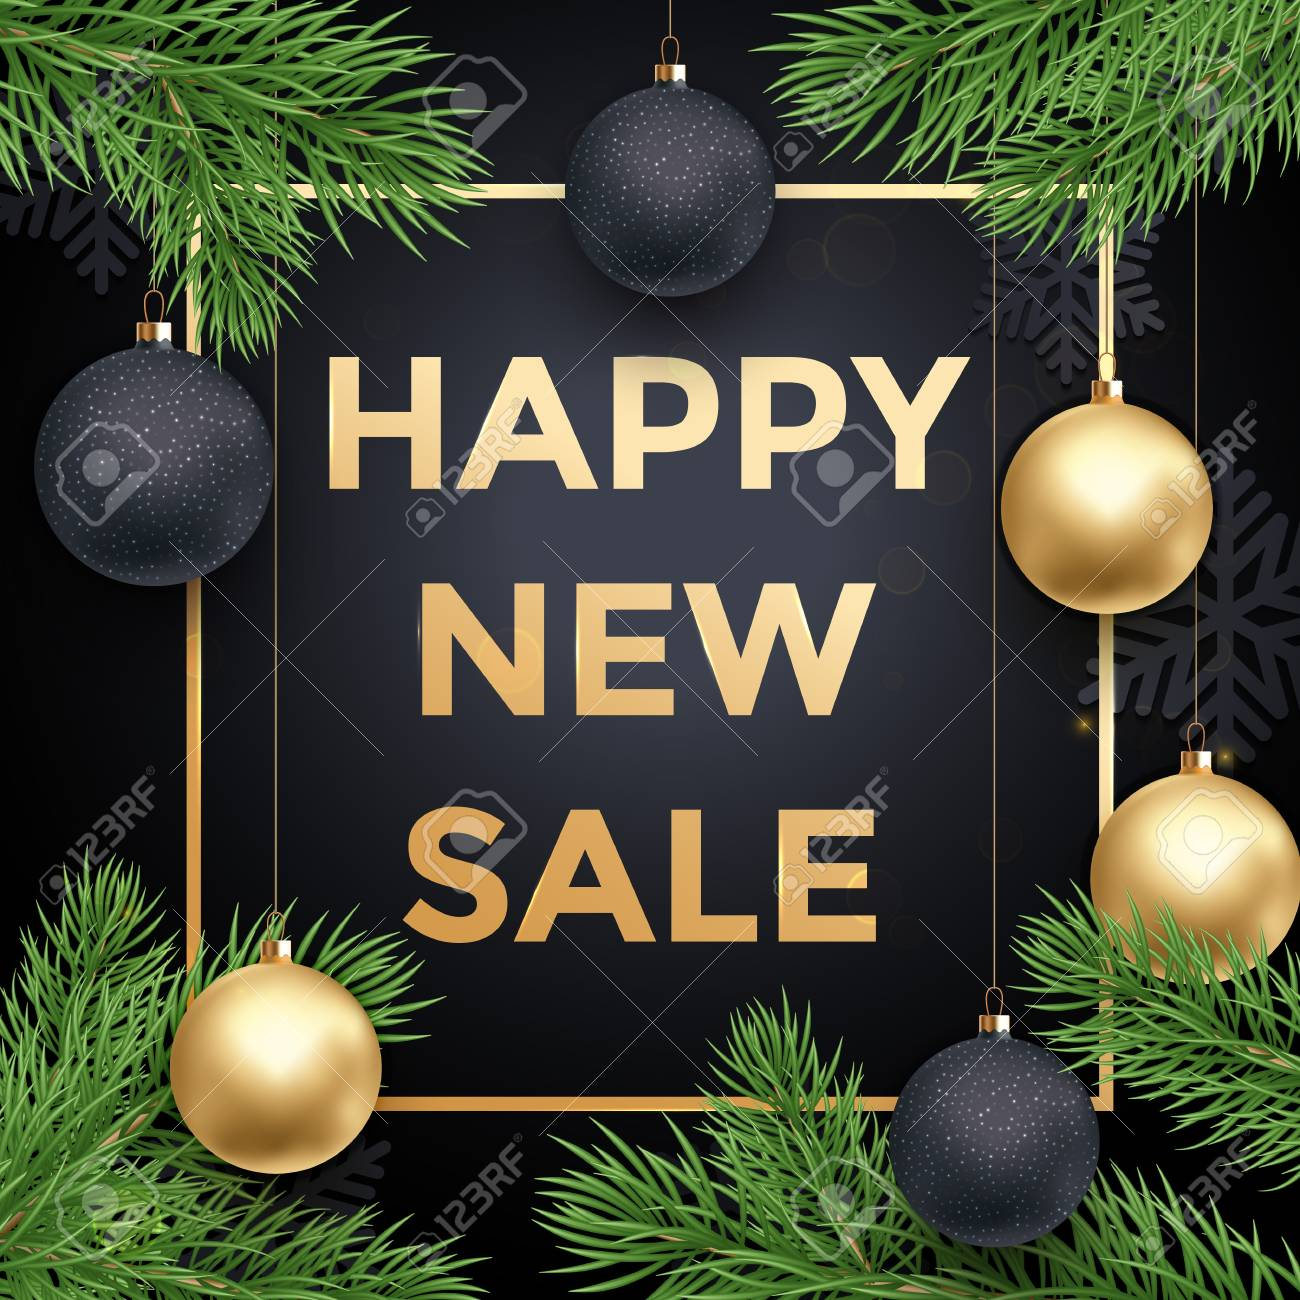 Newy Year Sale Poster Or Promo Gift Card With Gold Text Ball